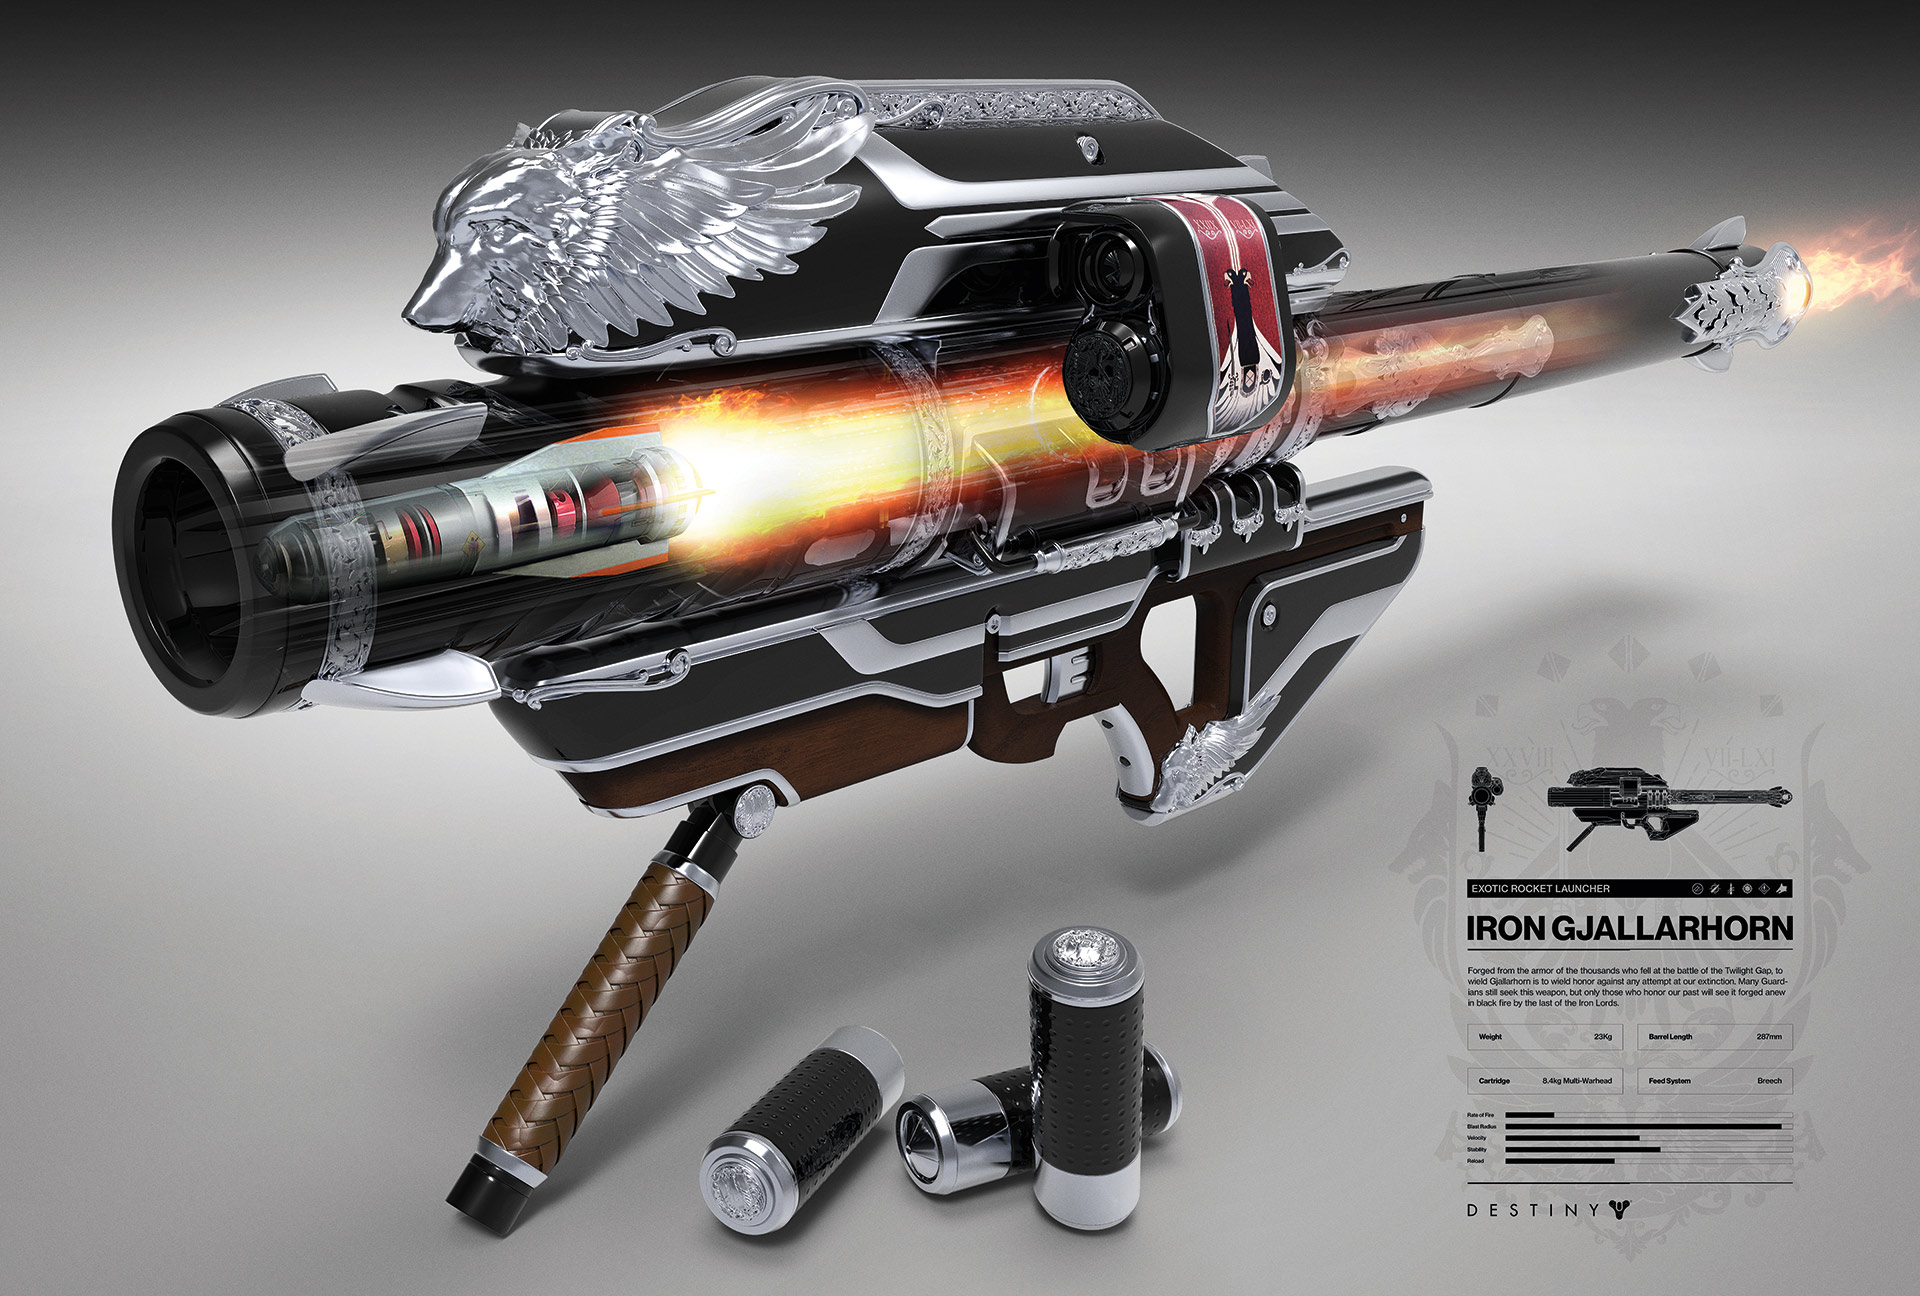 limited edition black and silver Iron Gjallarhorn